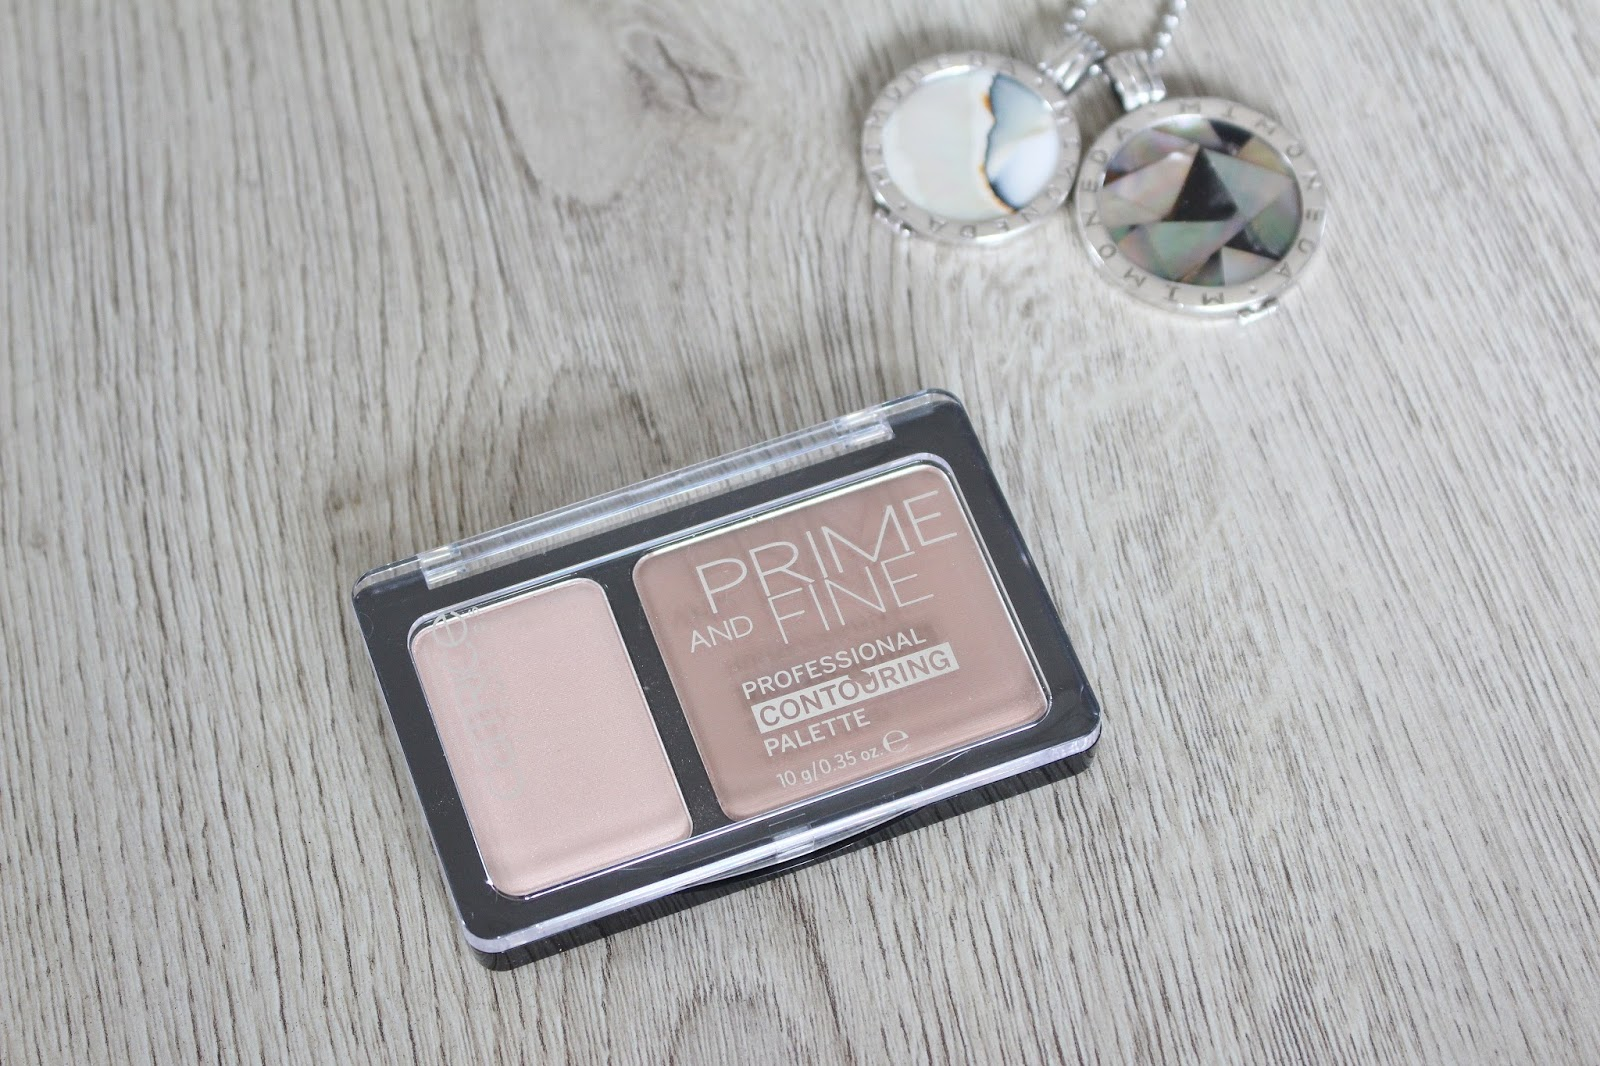 Catrice Prime and Fine Professional Contouring Palette (Ashy Radiance)